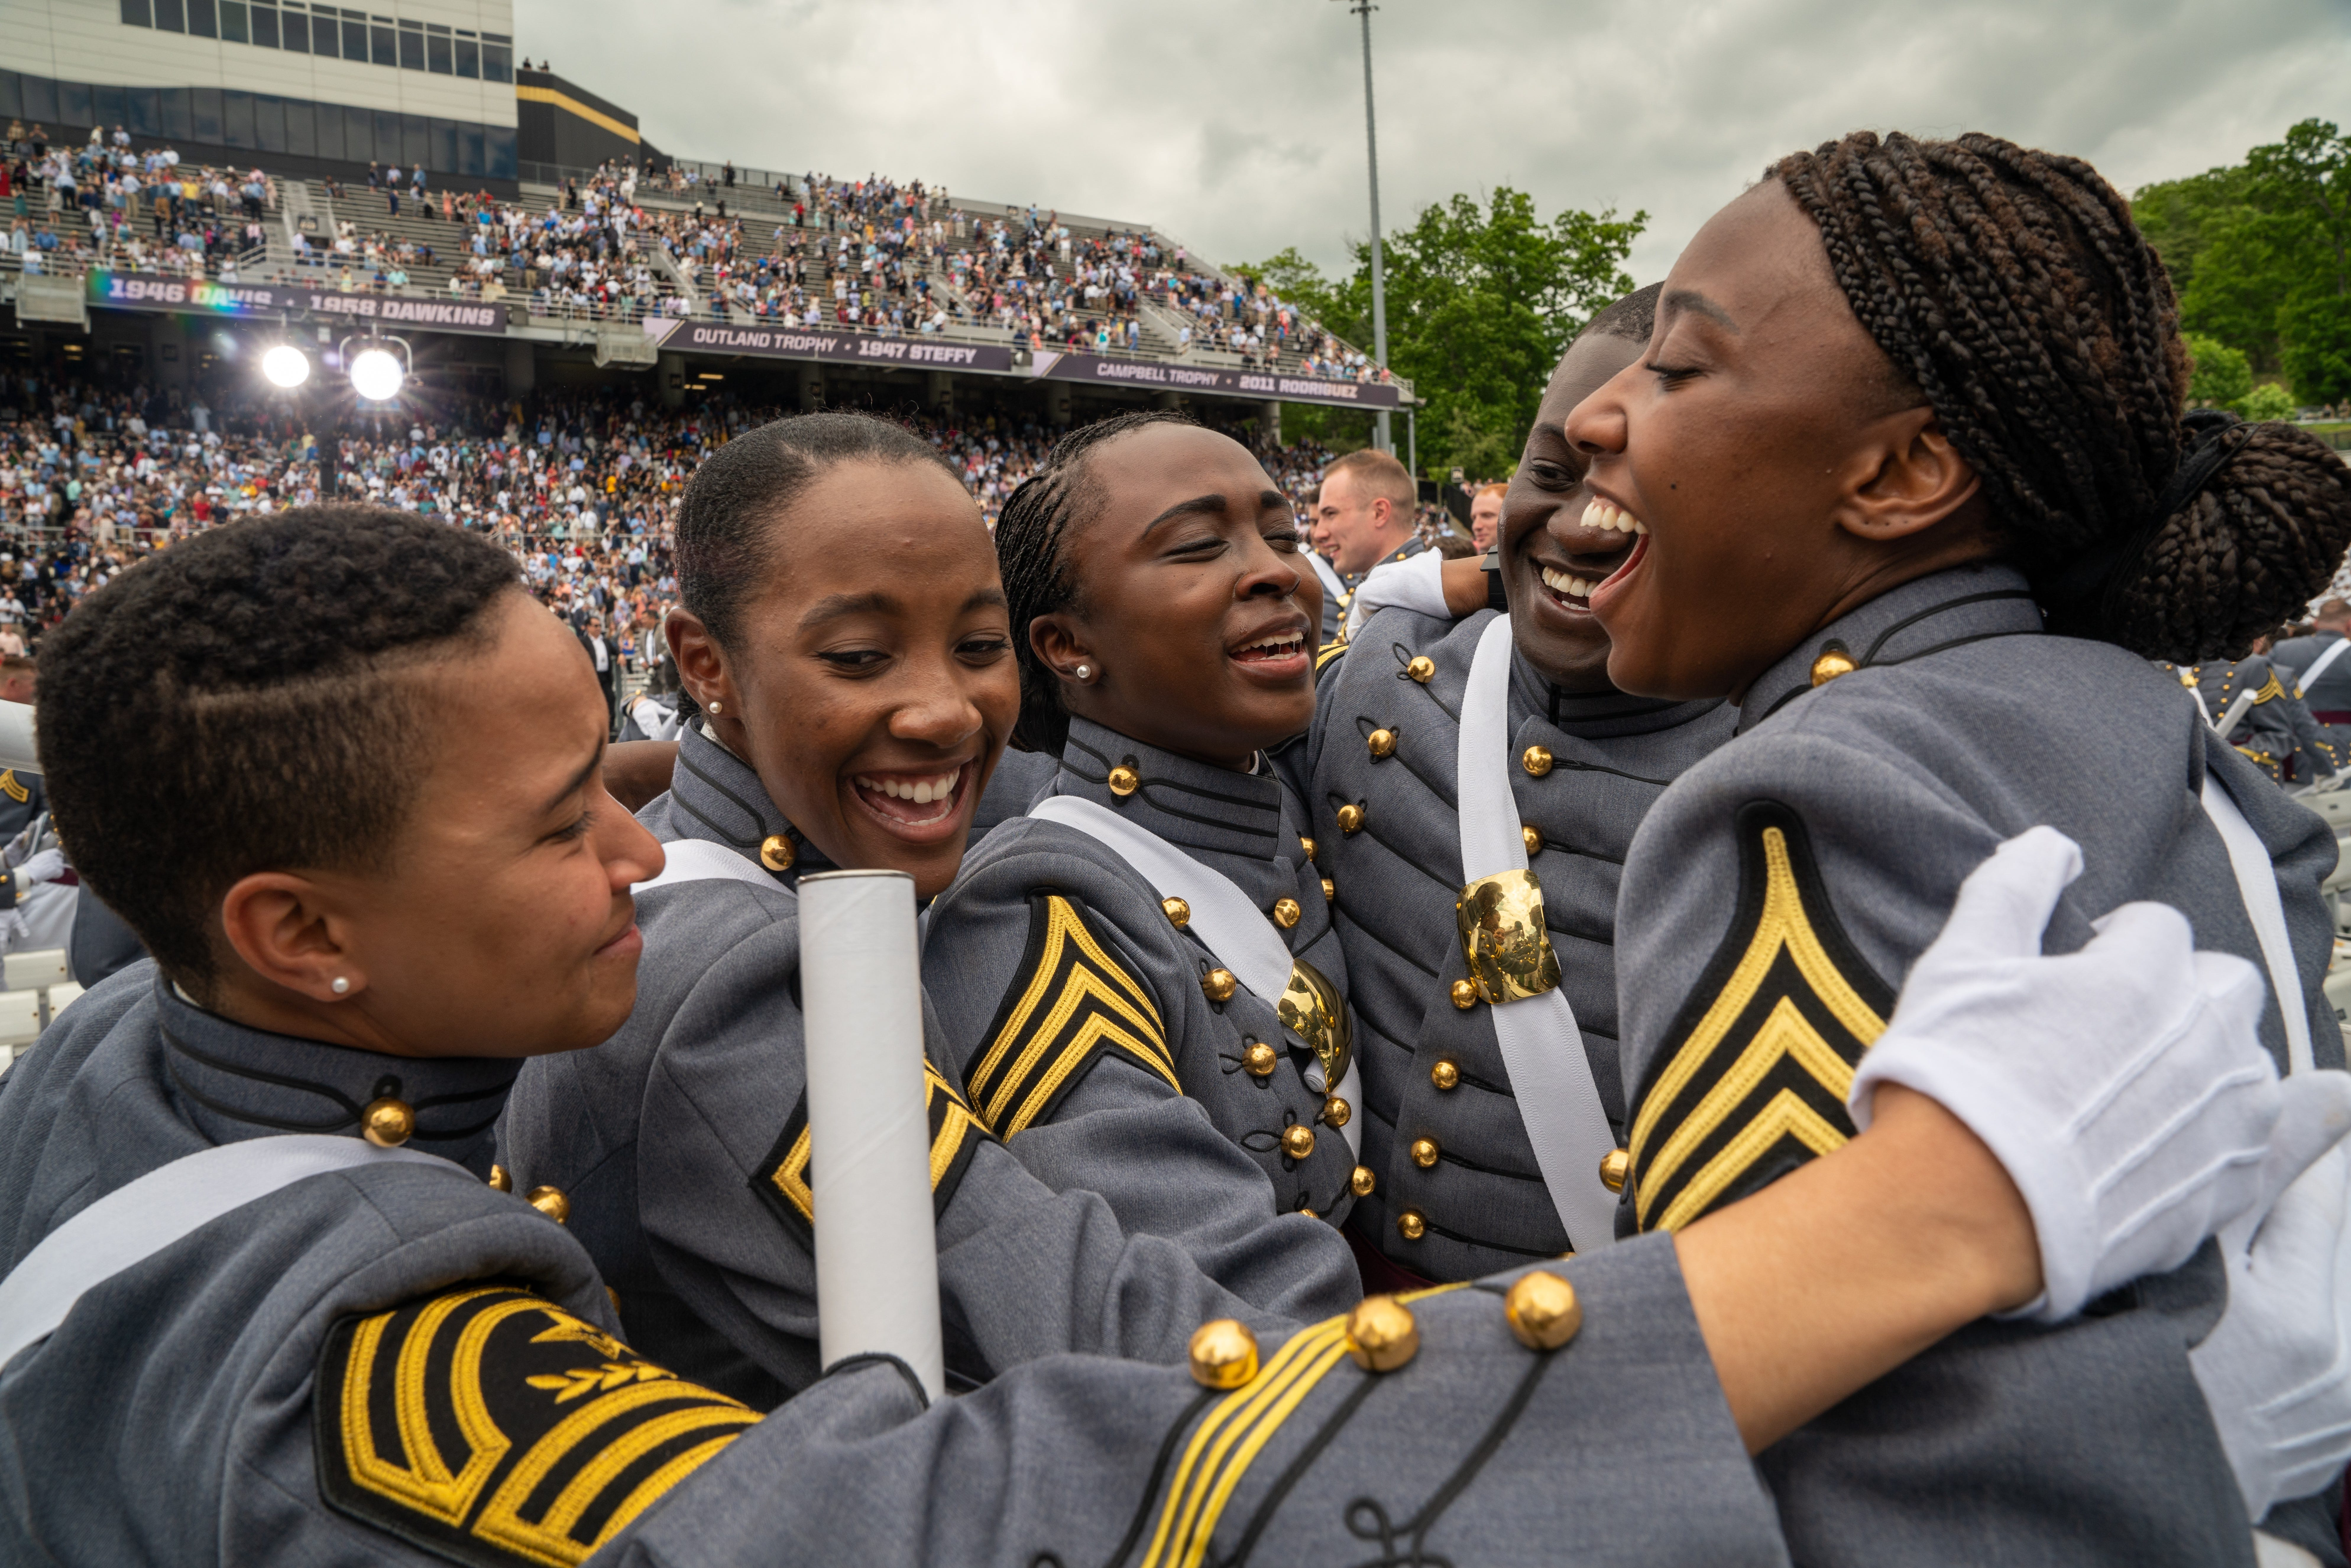 West Point graduates celebrate at the conclusion of the U.S. Military Academy Class of 2019 graduation ceremony at Michie Stadium on May 25, 2019, in West Point, N.Y.